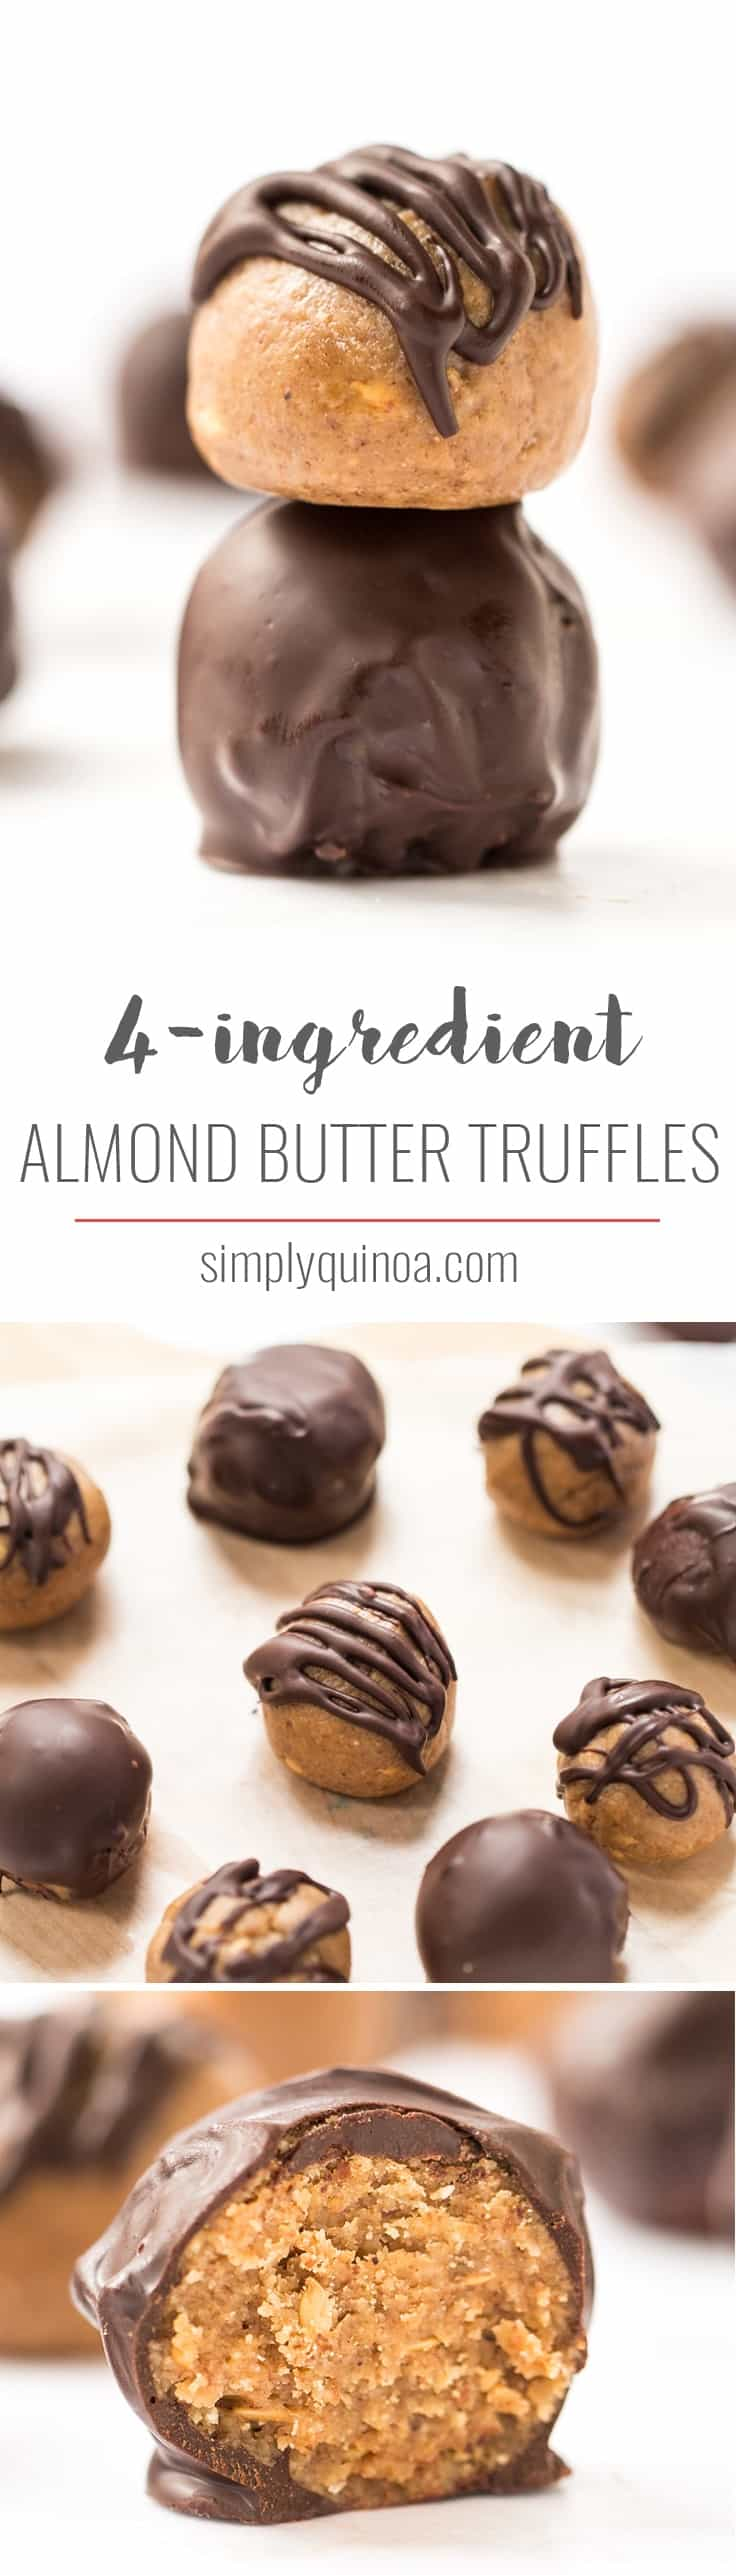 These AMAZING Almond Butter Truffles use just 4 ingredients and are the perfect healthy treat to satisfy your sweet tooth! [gluten-free, vegan & paleo]